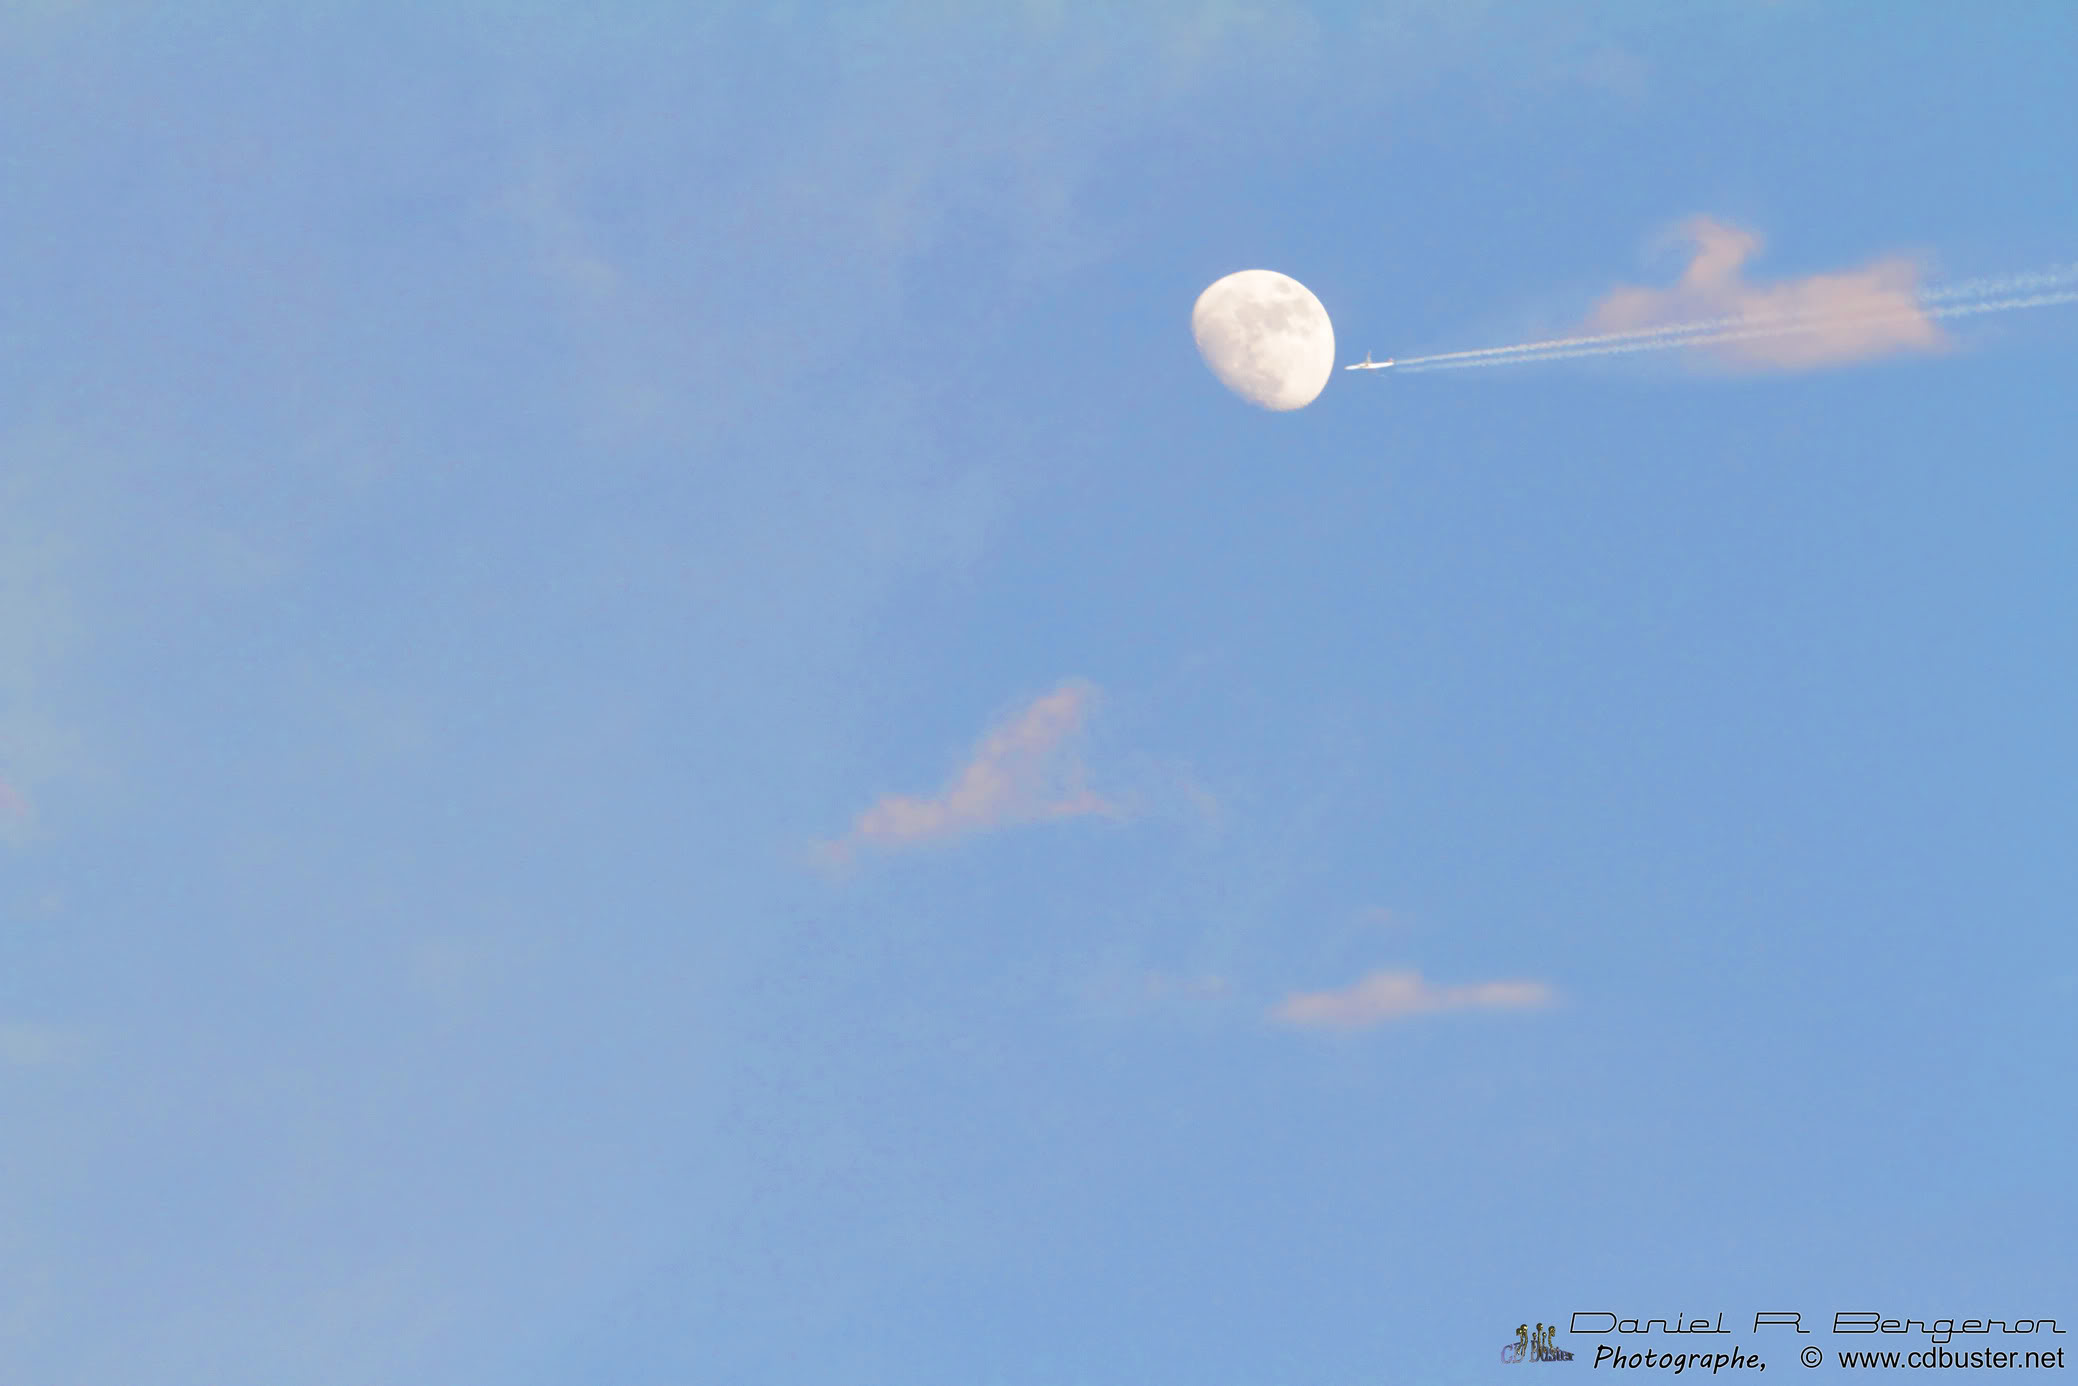 Objectif Lune IMG_2959a